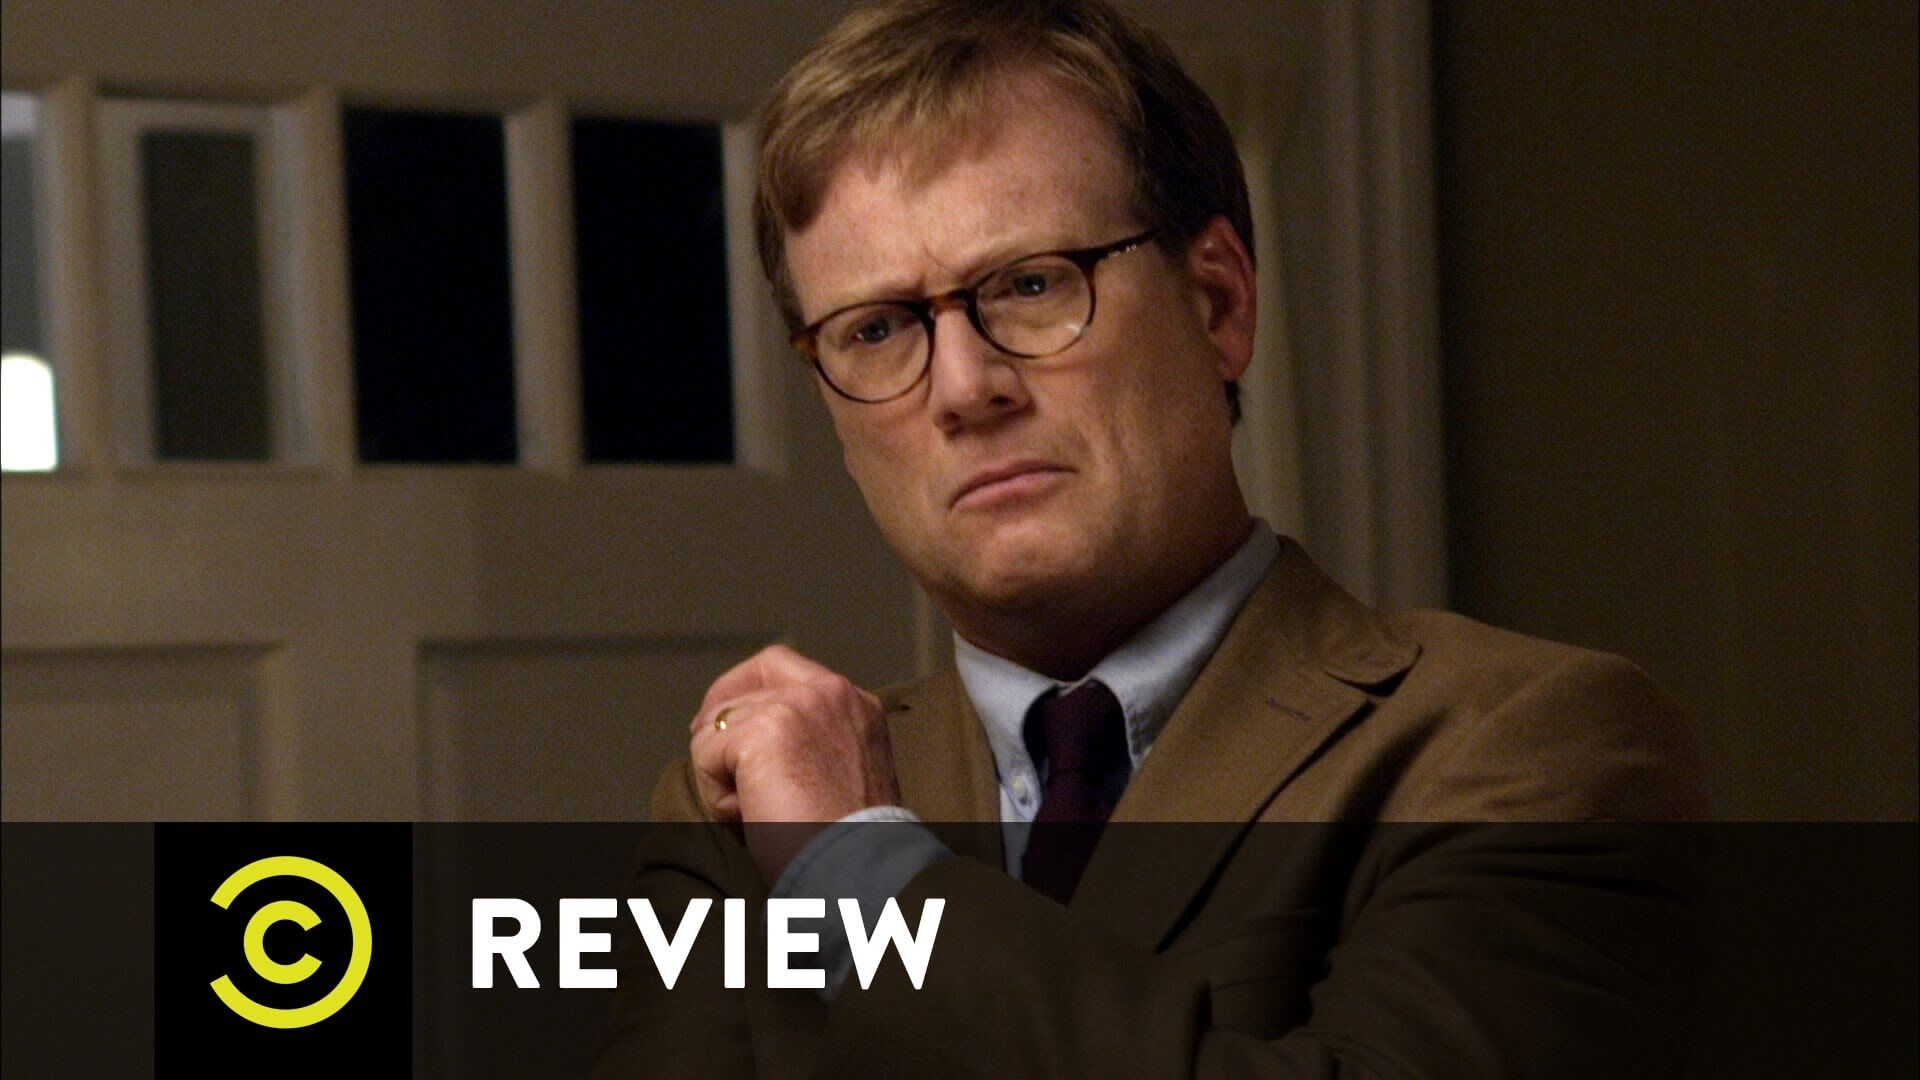 Série Review with forrest macneil